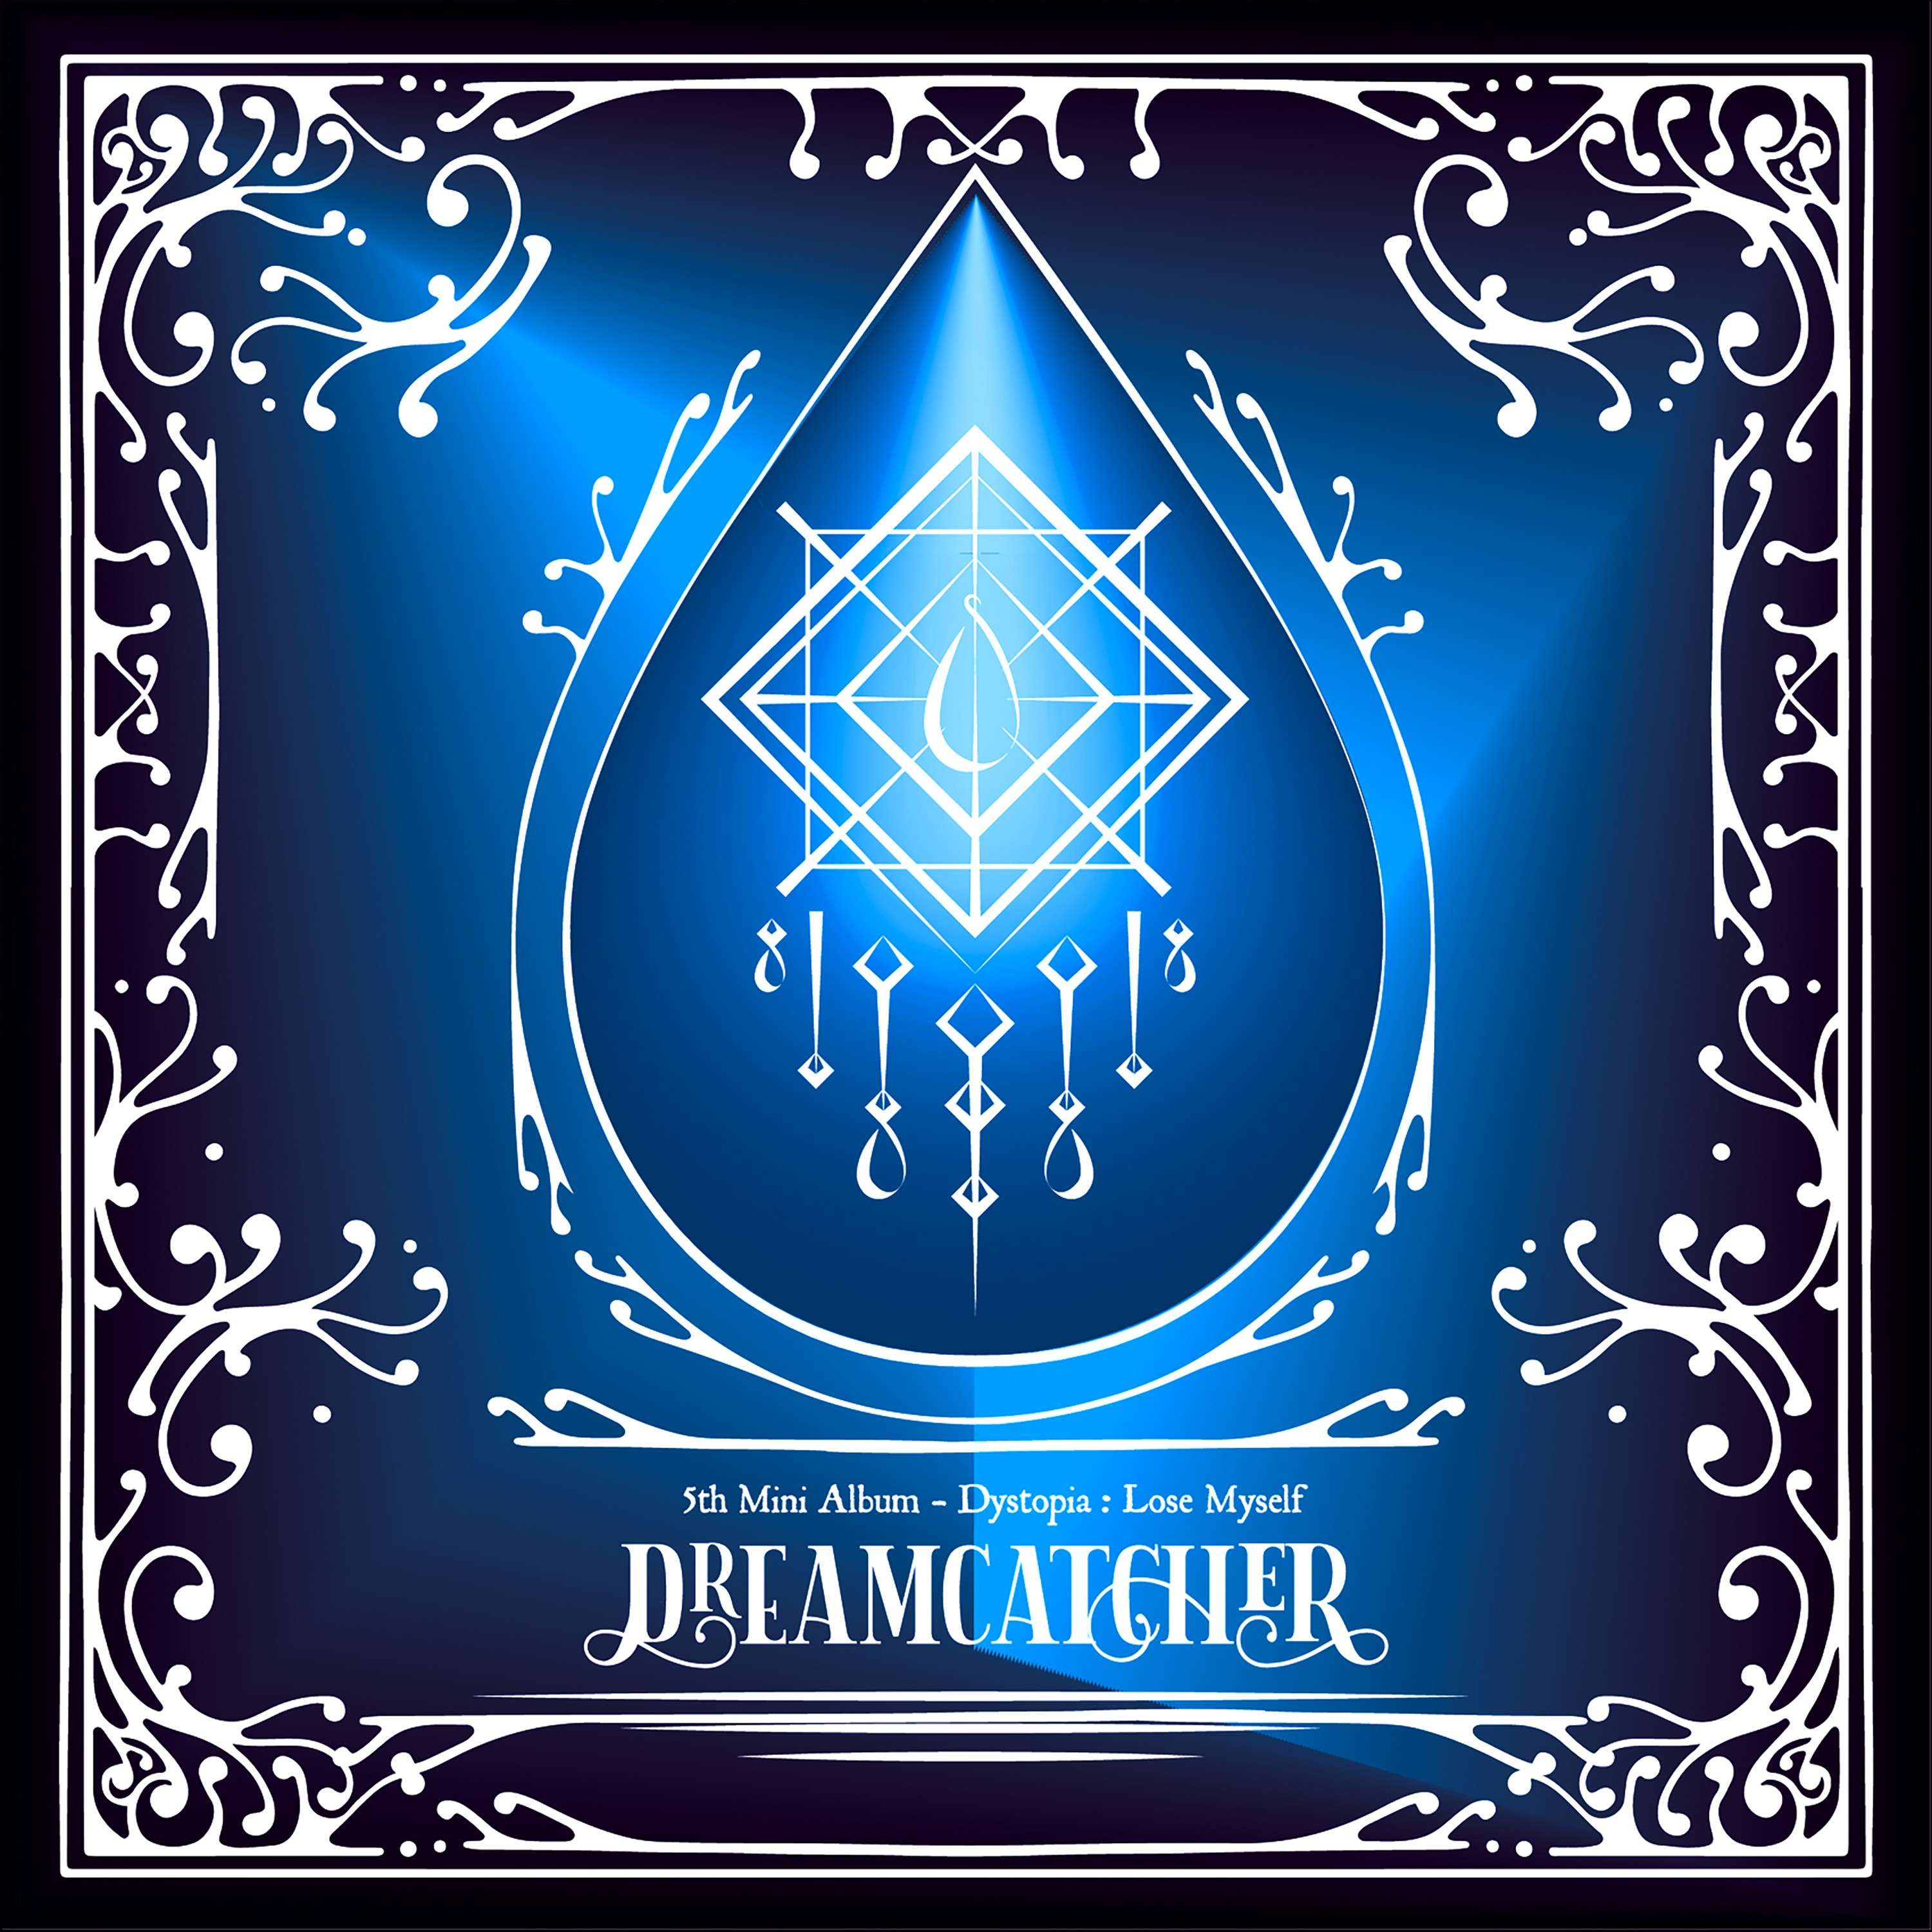 Dreamcatcher – [Dystopia : Lose Myself] [FLAC / 24bit Lossless / WEB] [2020.08.17]